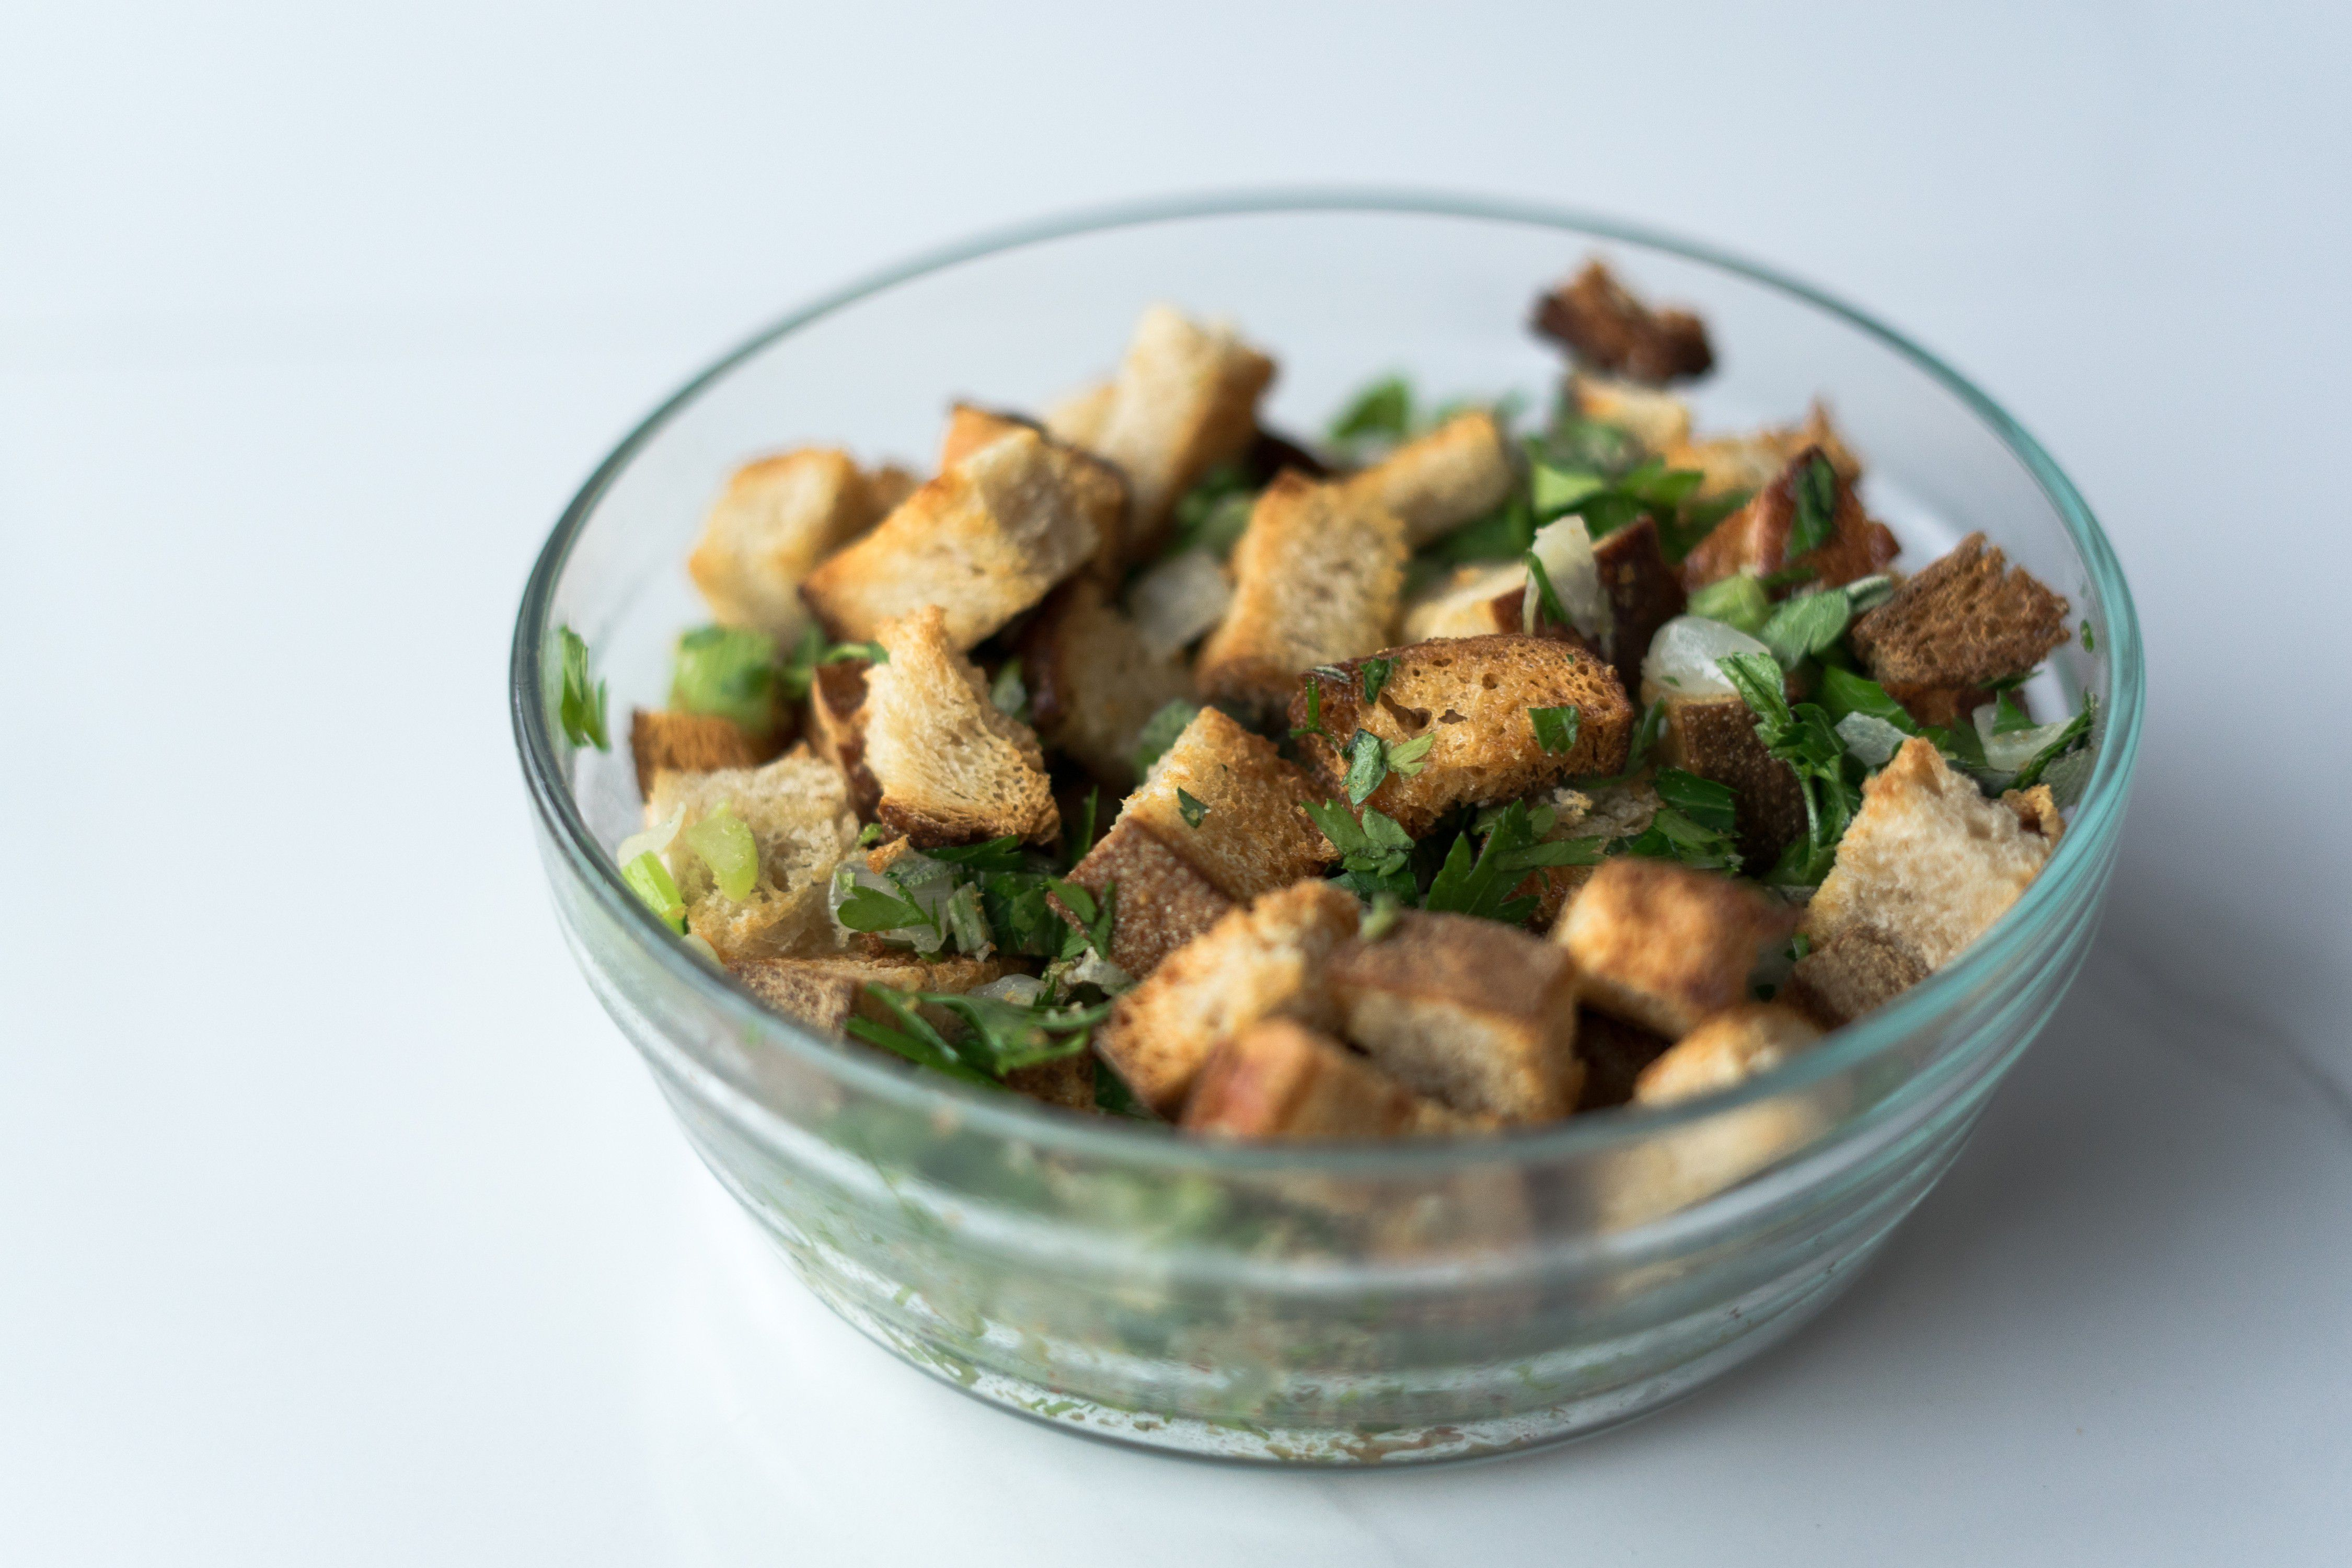 Oven-baked stuffing with sage.